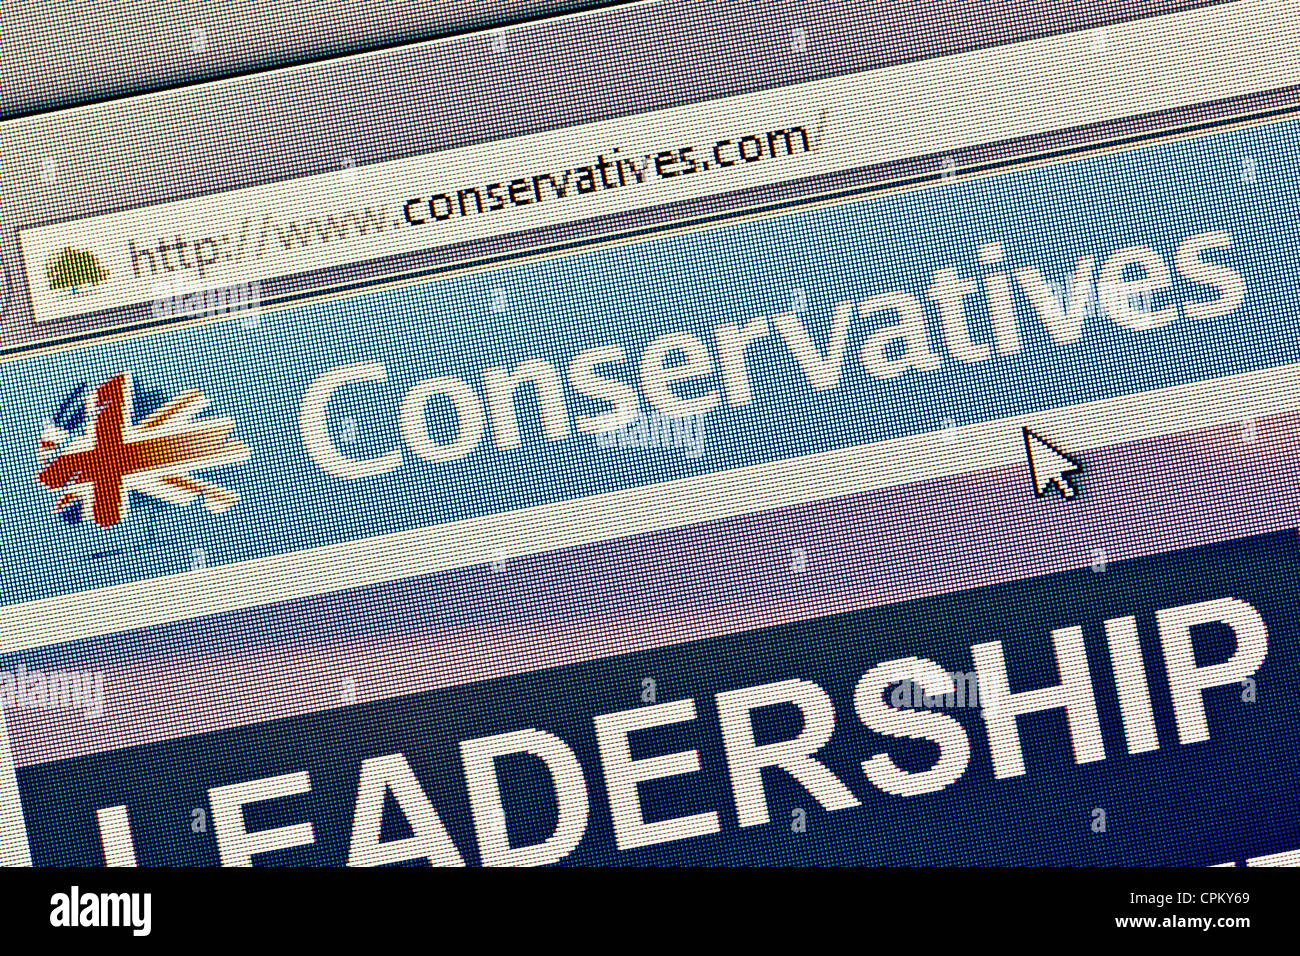 Conservative Party UK logo and website close up - Stock Image